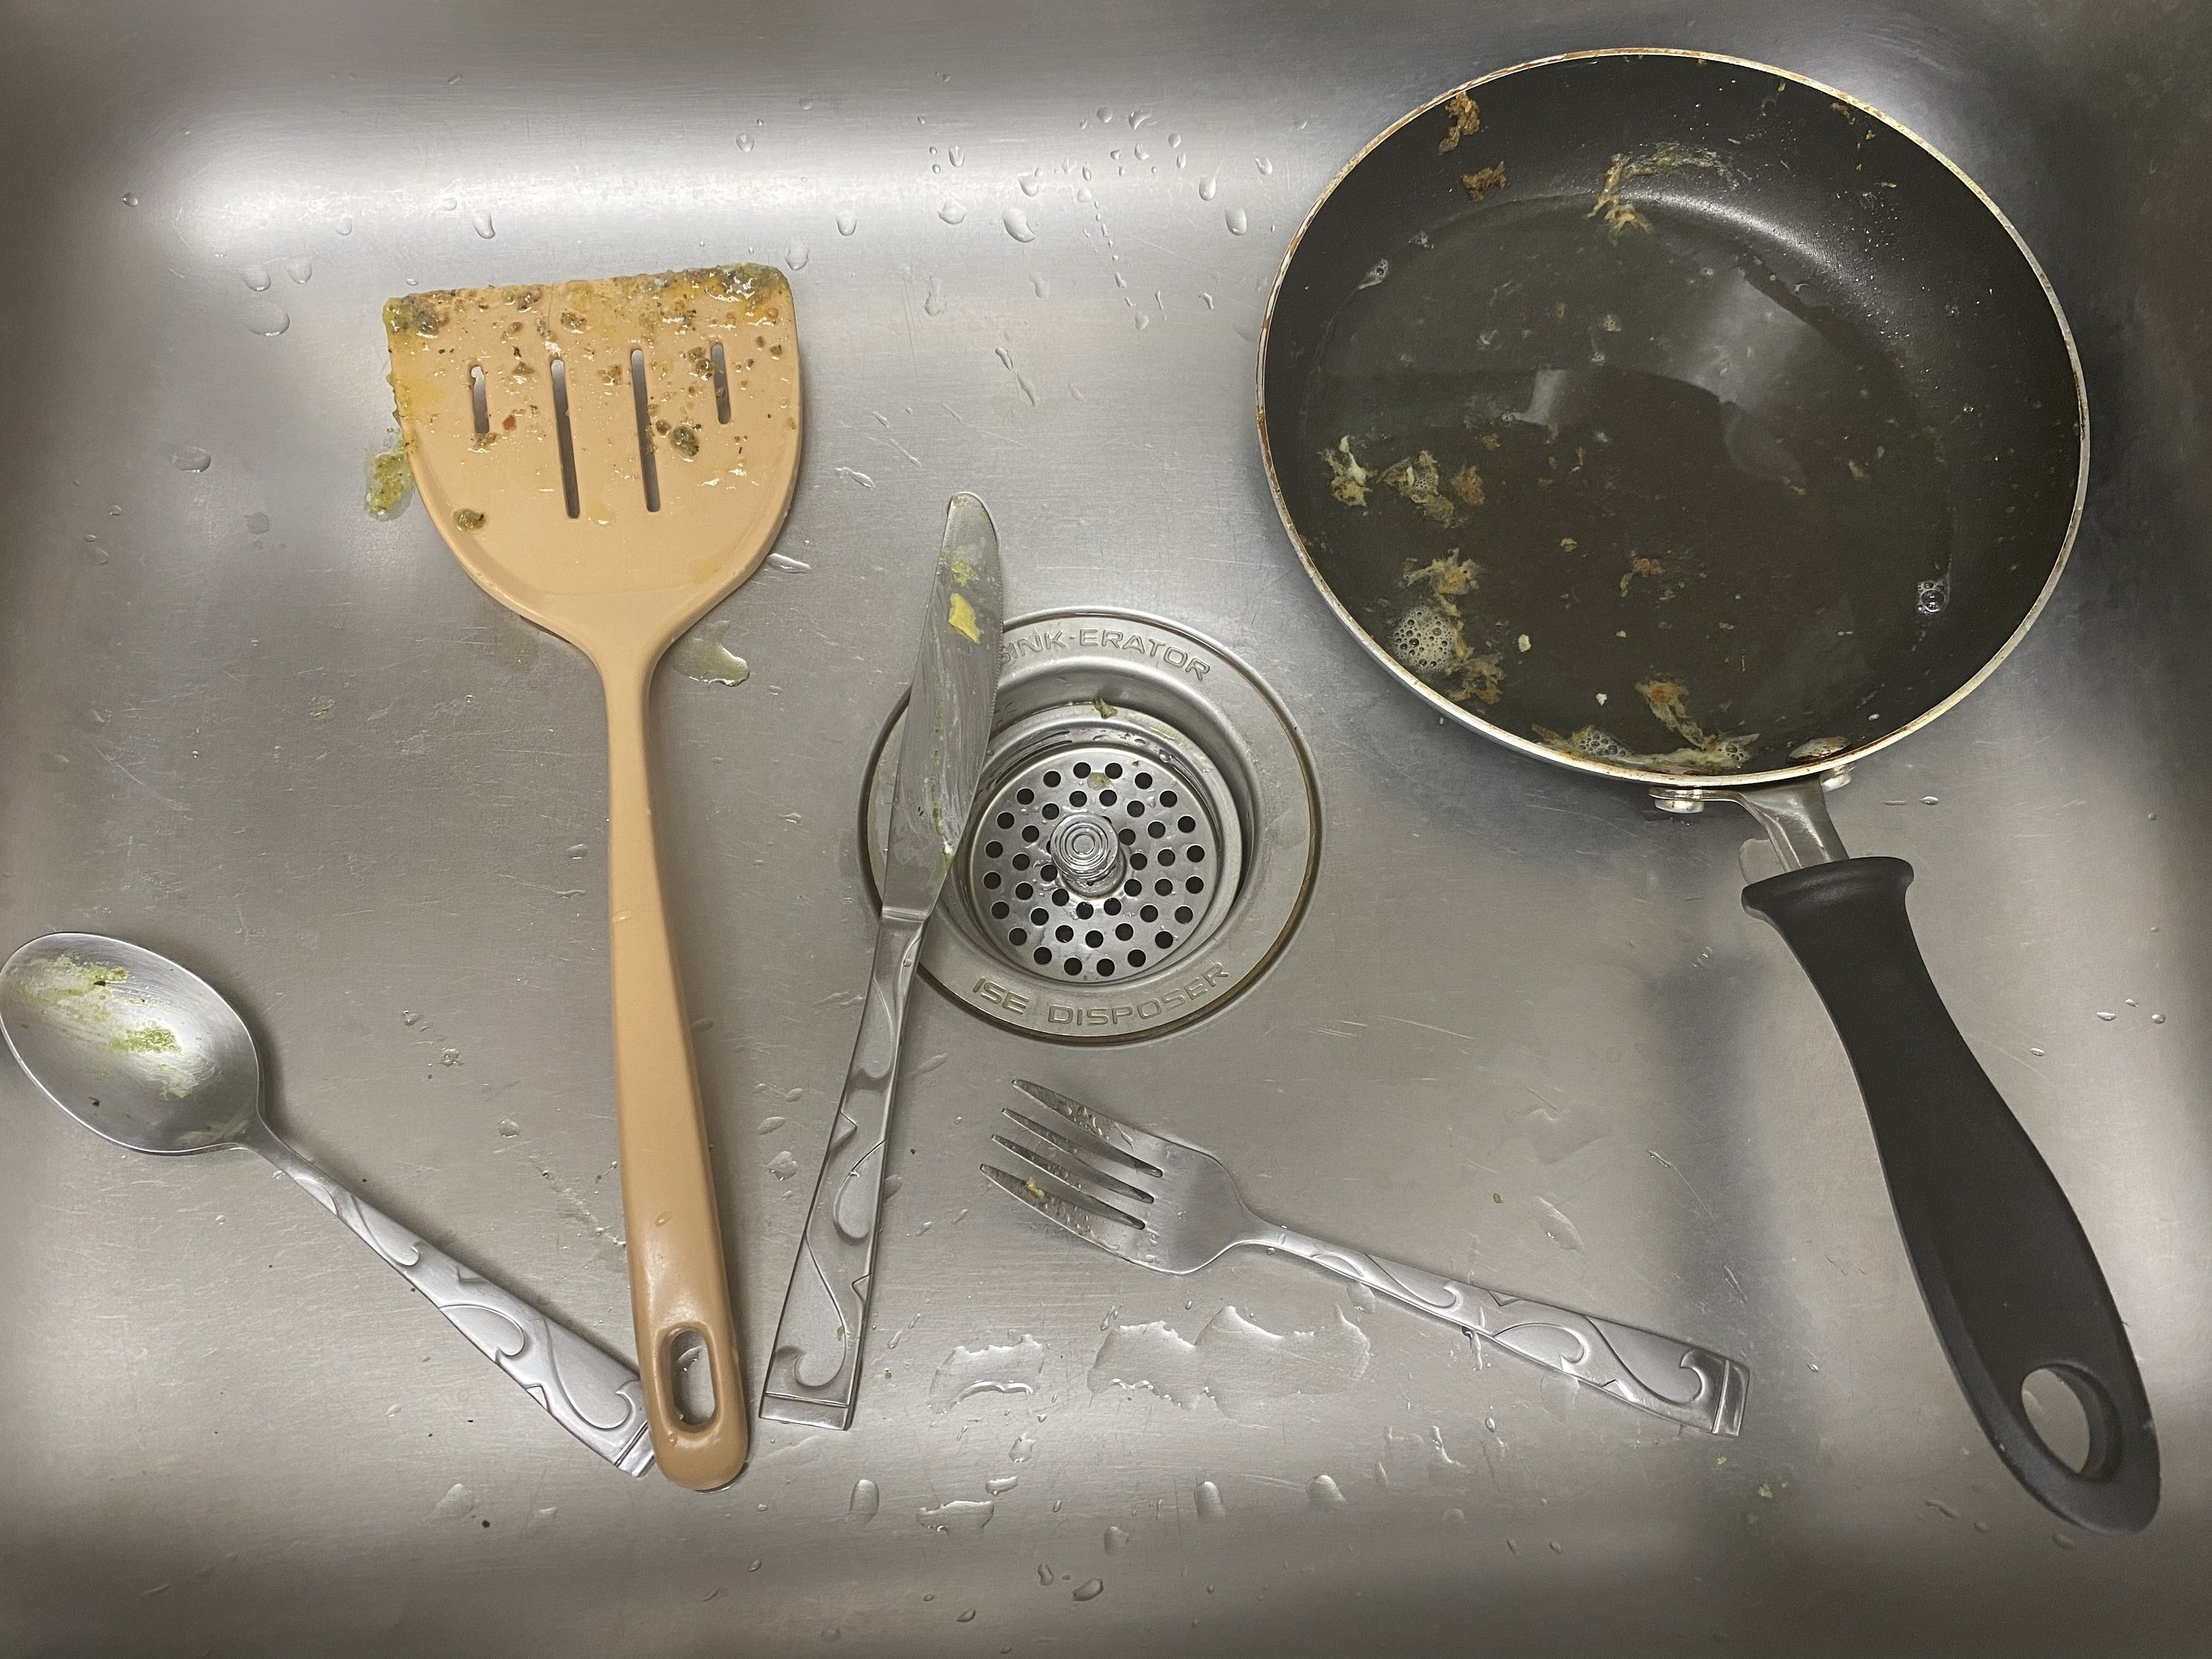 Dishes in the sick